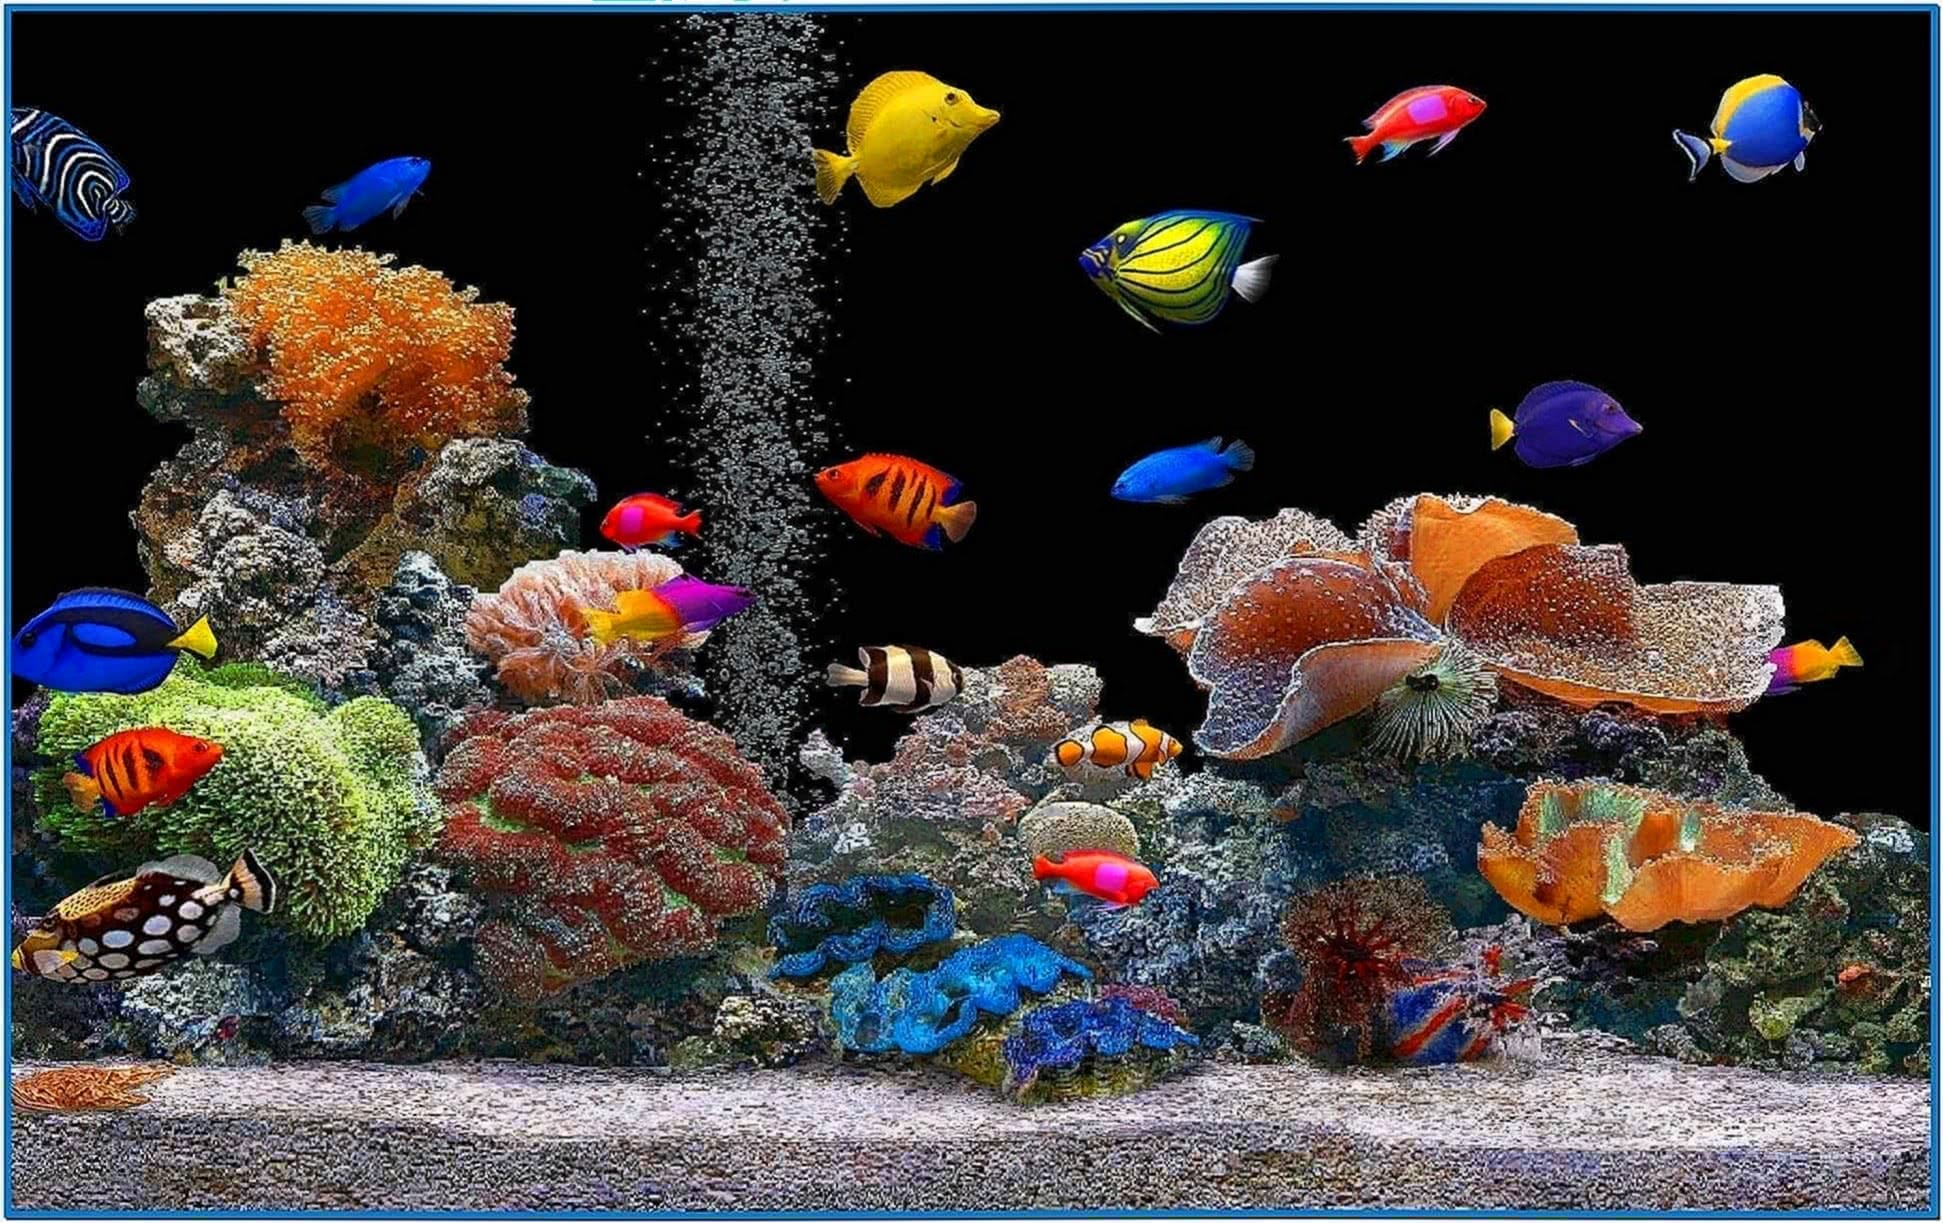 Marine aquarium screensaver hd download free for Reef tank fish